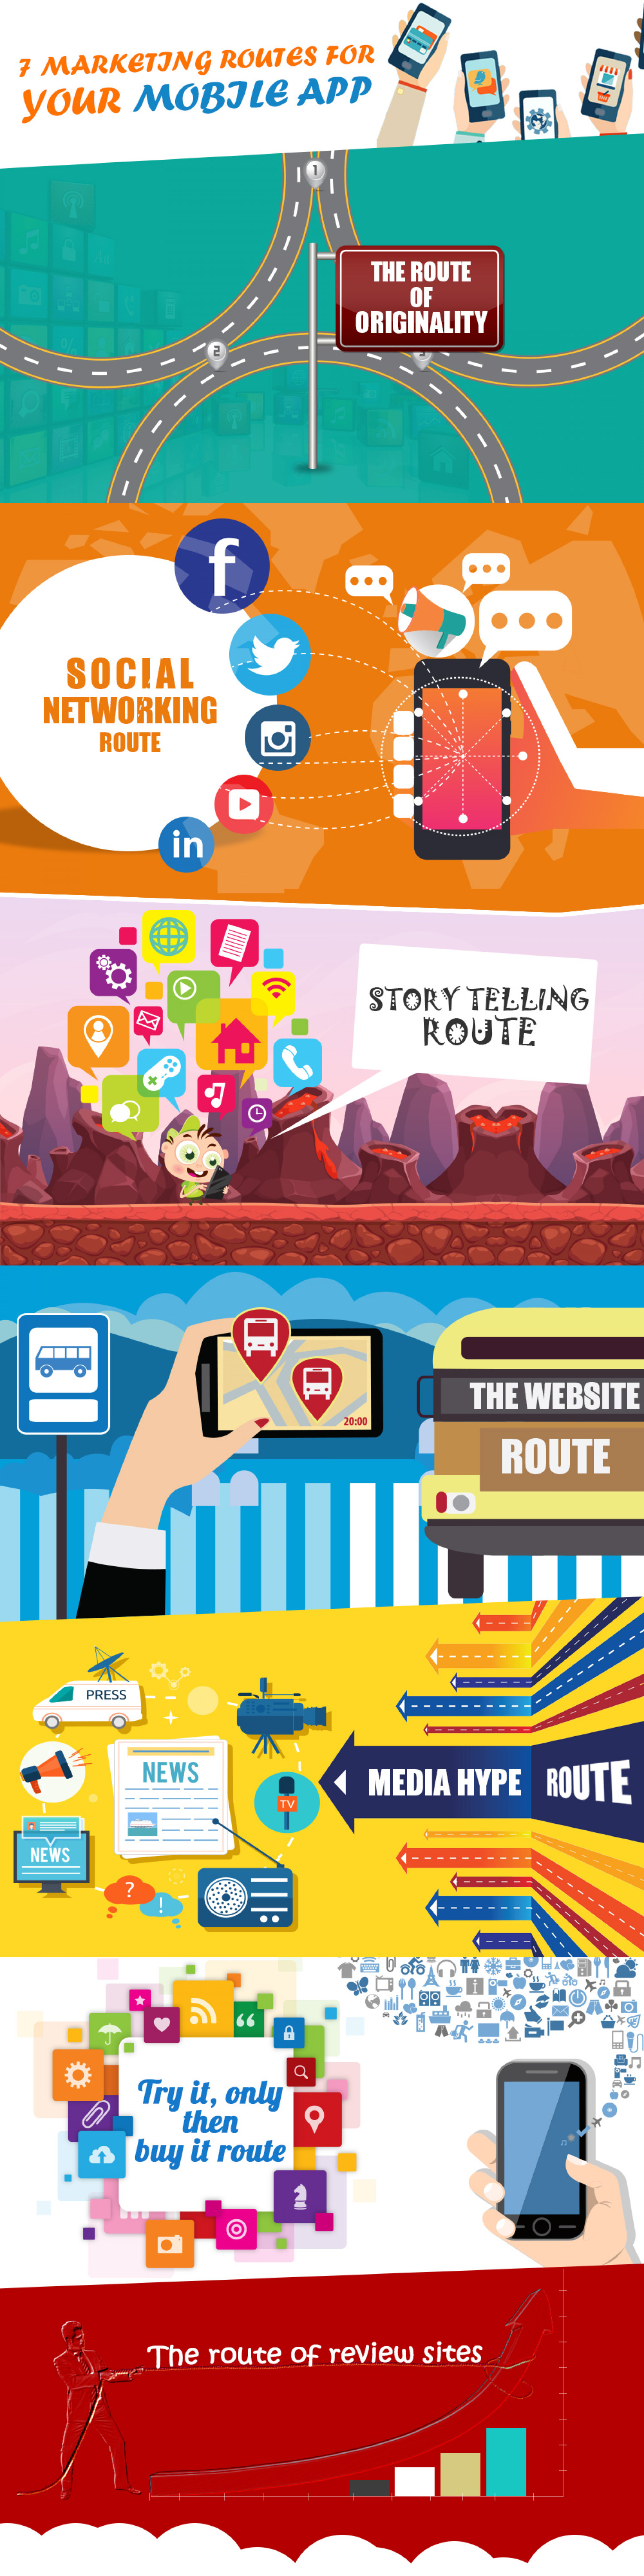 7 Marketing Routes for Your Mobile App Infographic